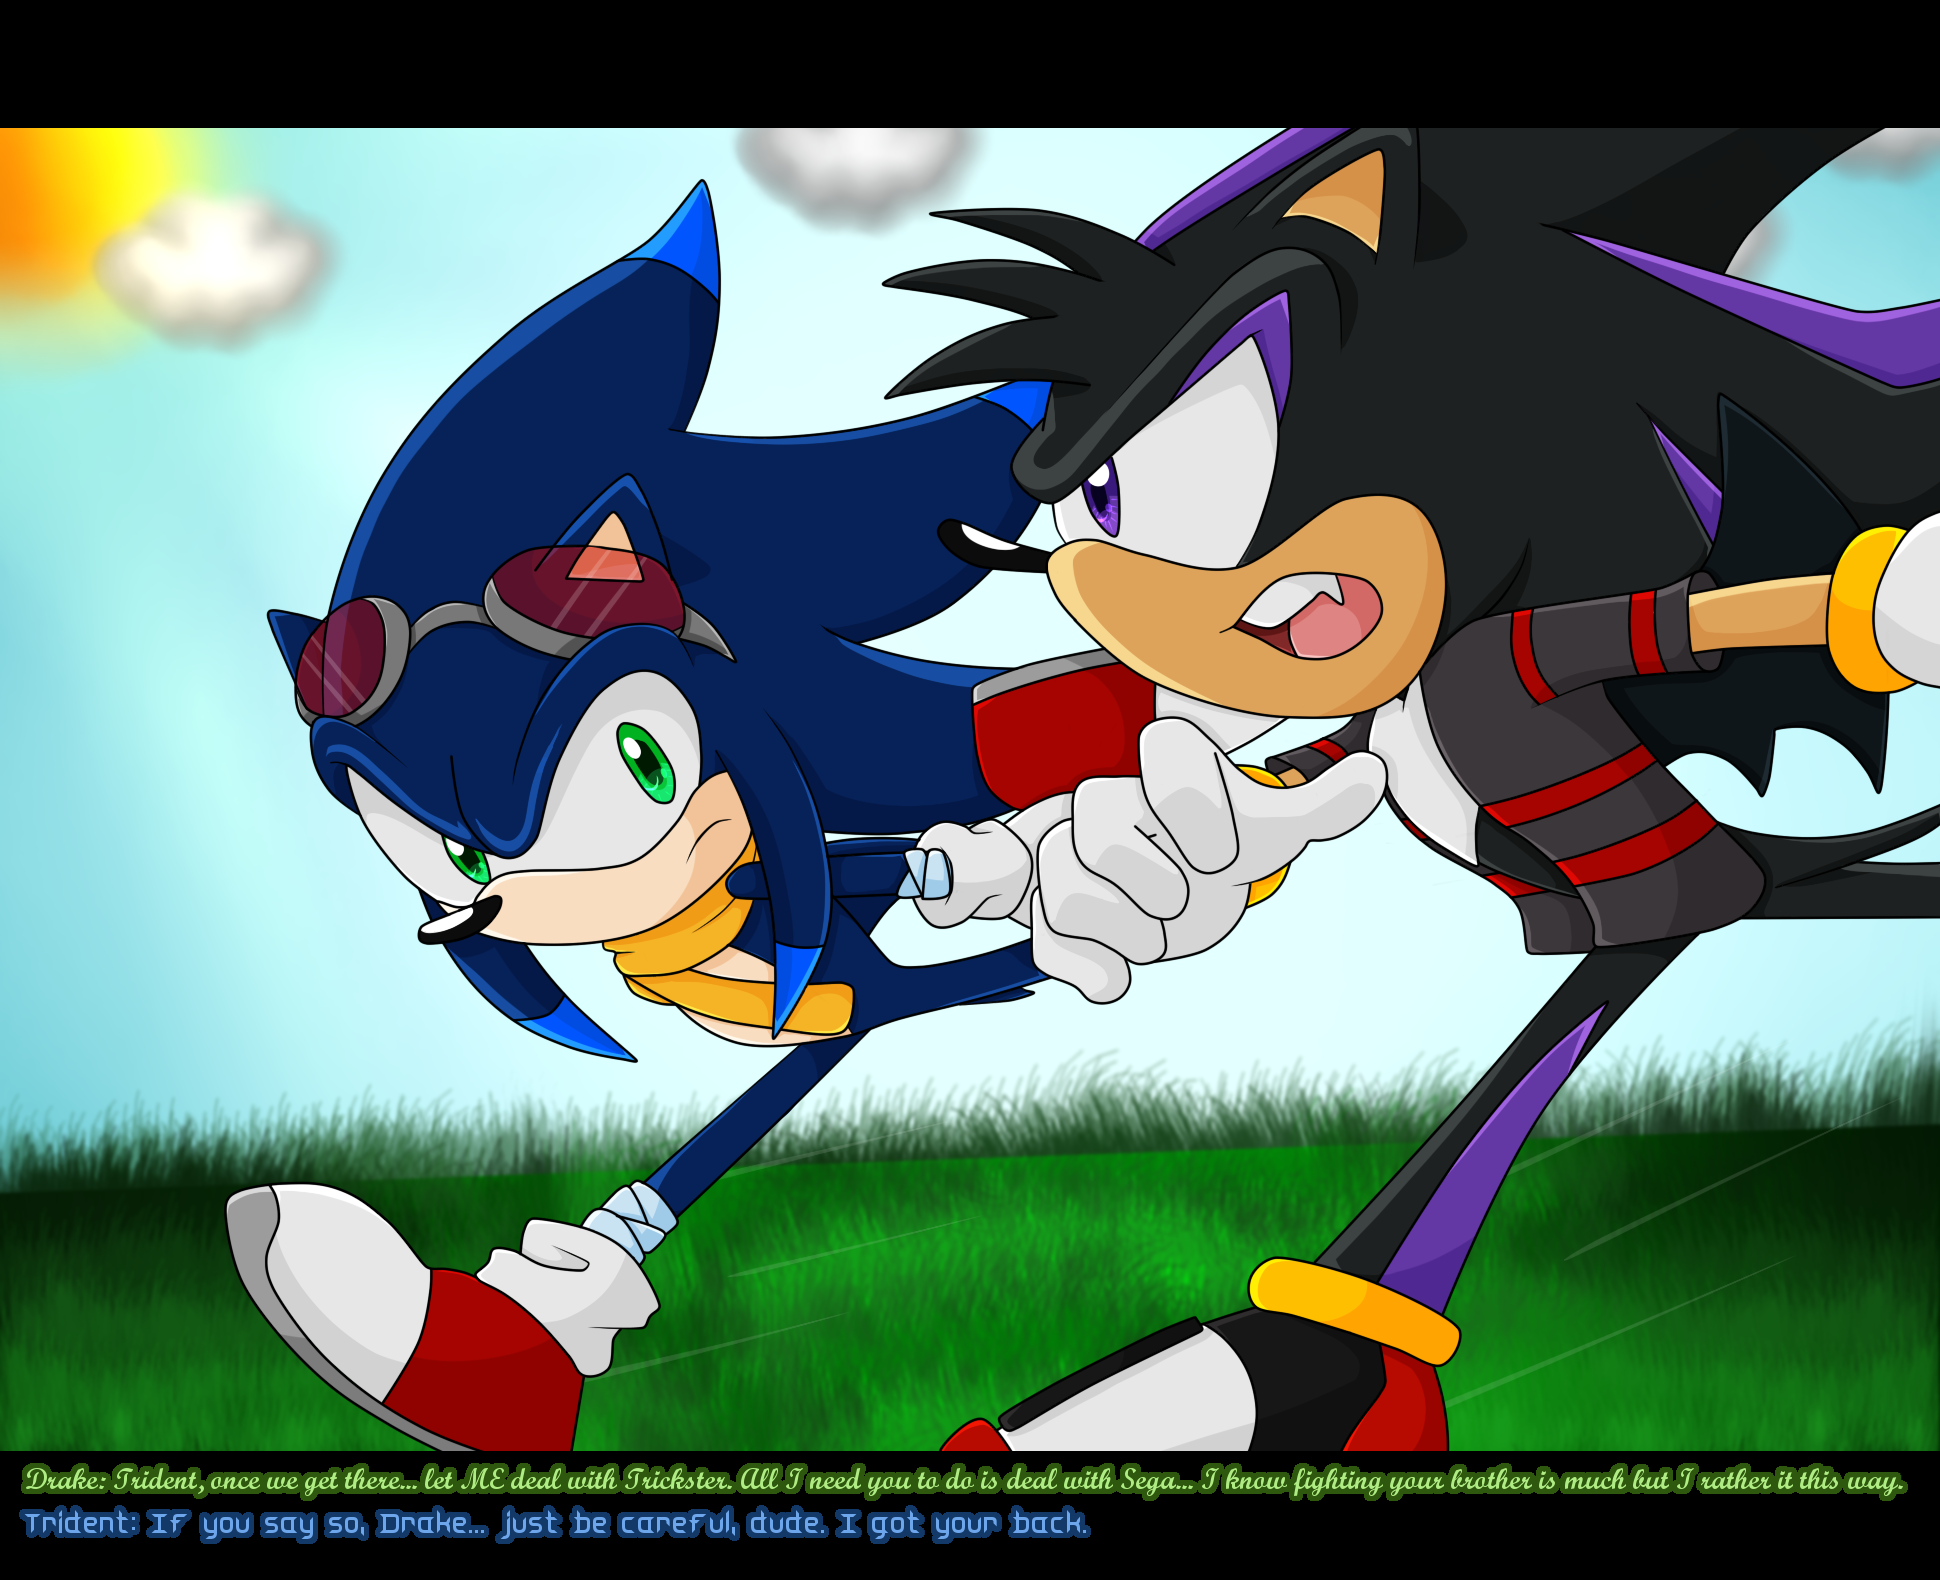 Fotos Do Sonic X with image - trident and drake to the rescue - fake sonic x screenshot